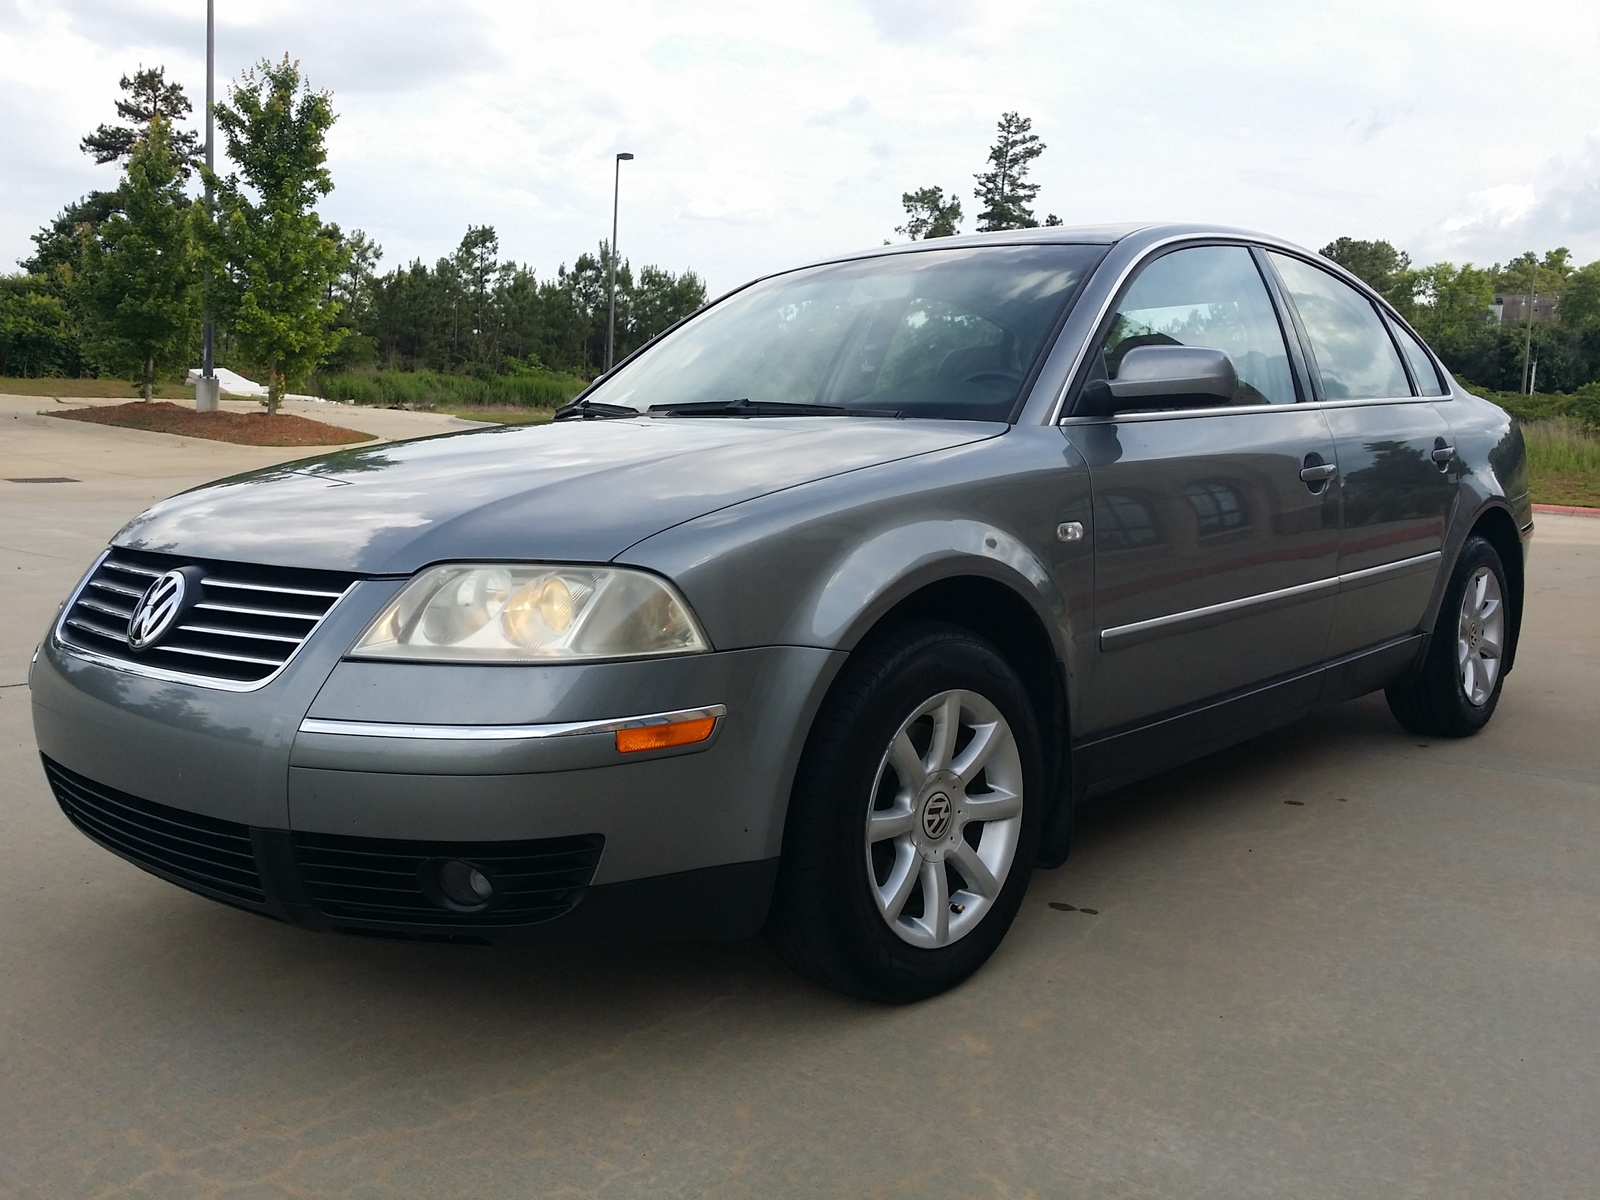 2001 vw jetta tdi with 2004 Volkswagen Passat Pictures C5869 on 2004 Volkswagen Passat Pictures C5869 moreover Dashboard 84607141 besides 2003 Jetta Stereo Wiring Diagram together with Showthread additionally Audi A4 B6 1 8t Oil Change.